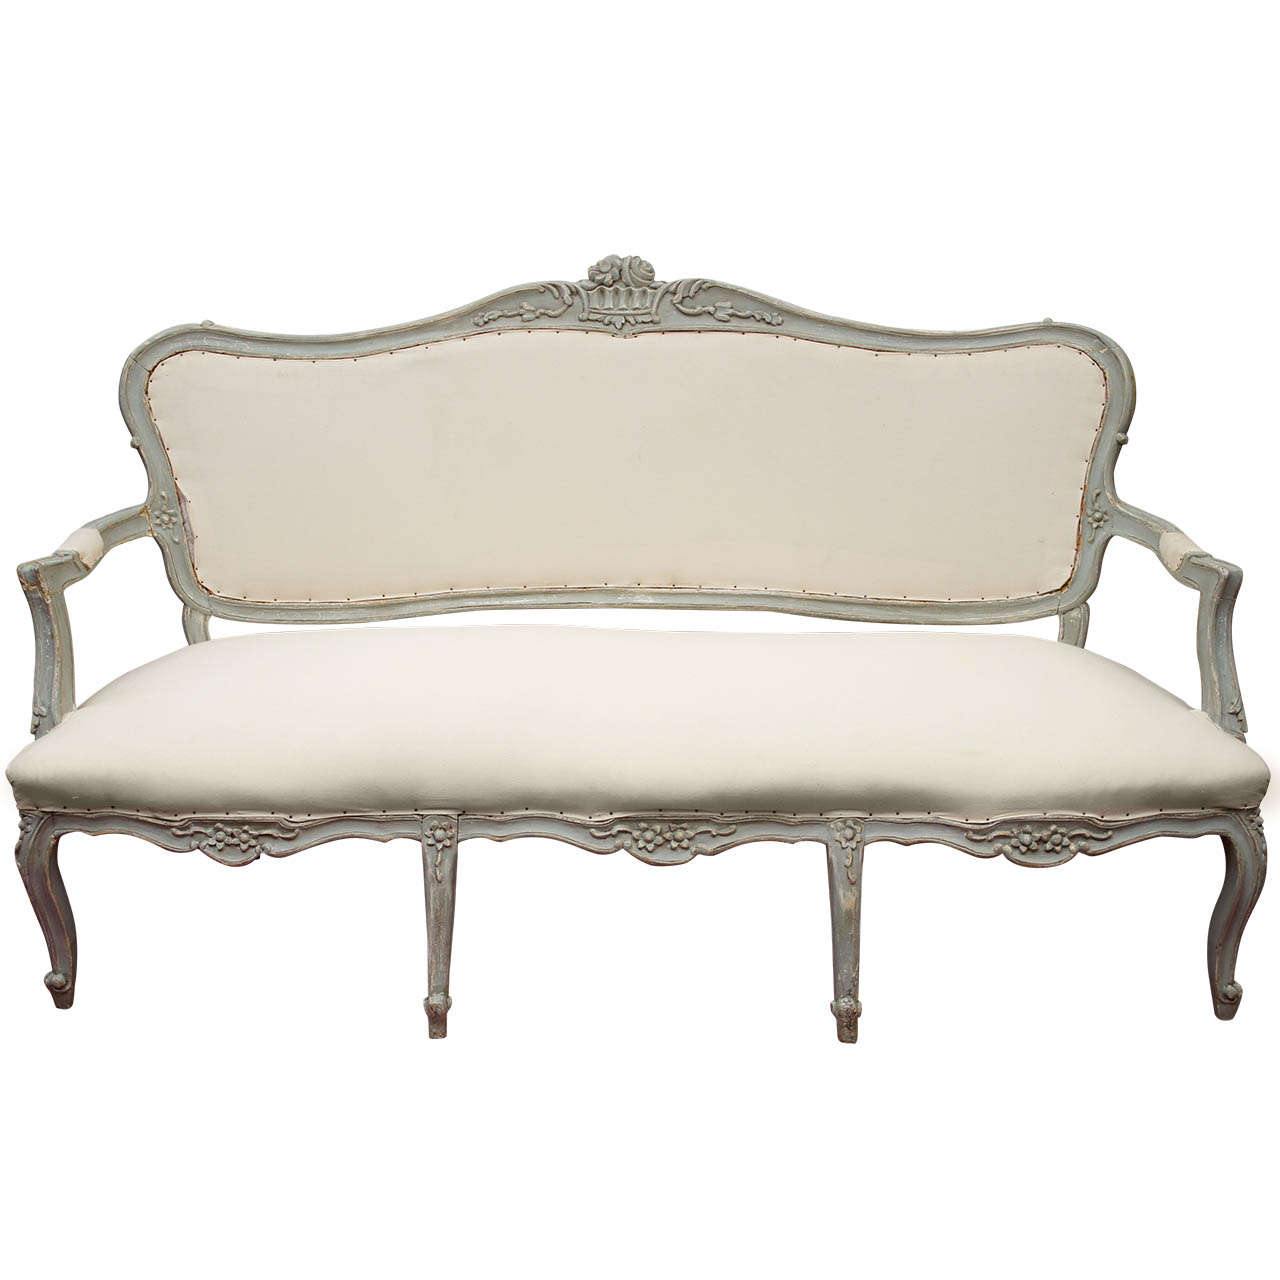 19th century louis xv settee at 1stdibs